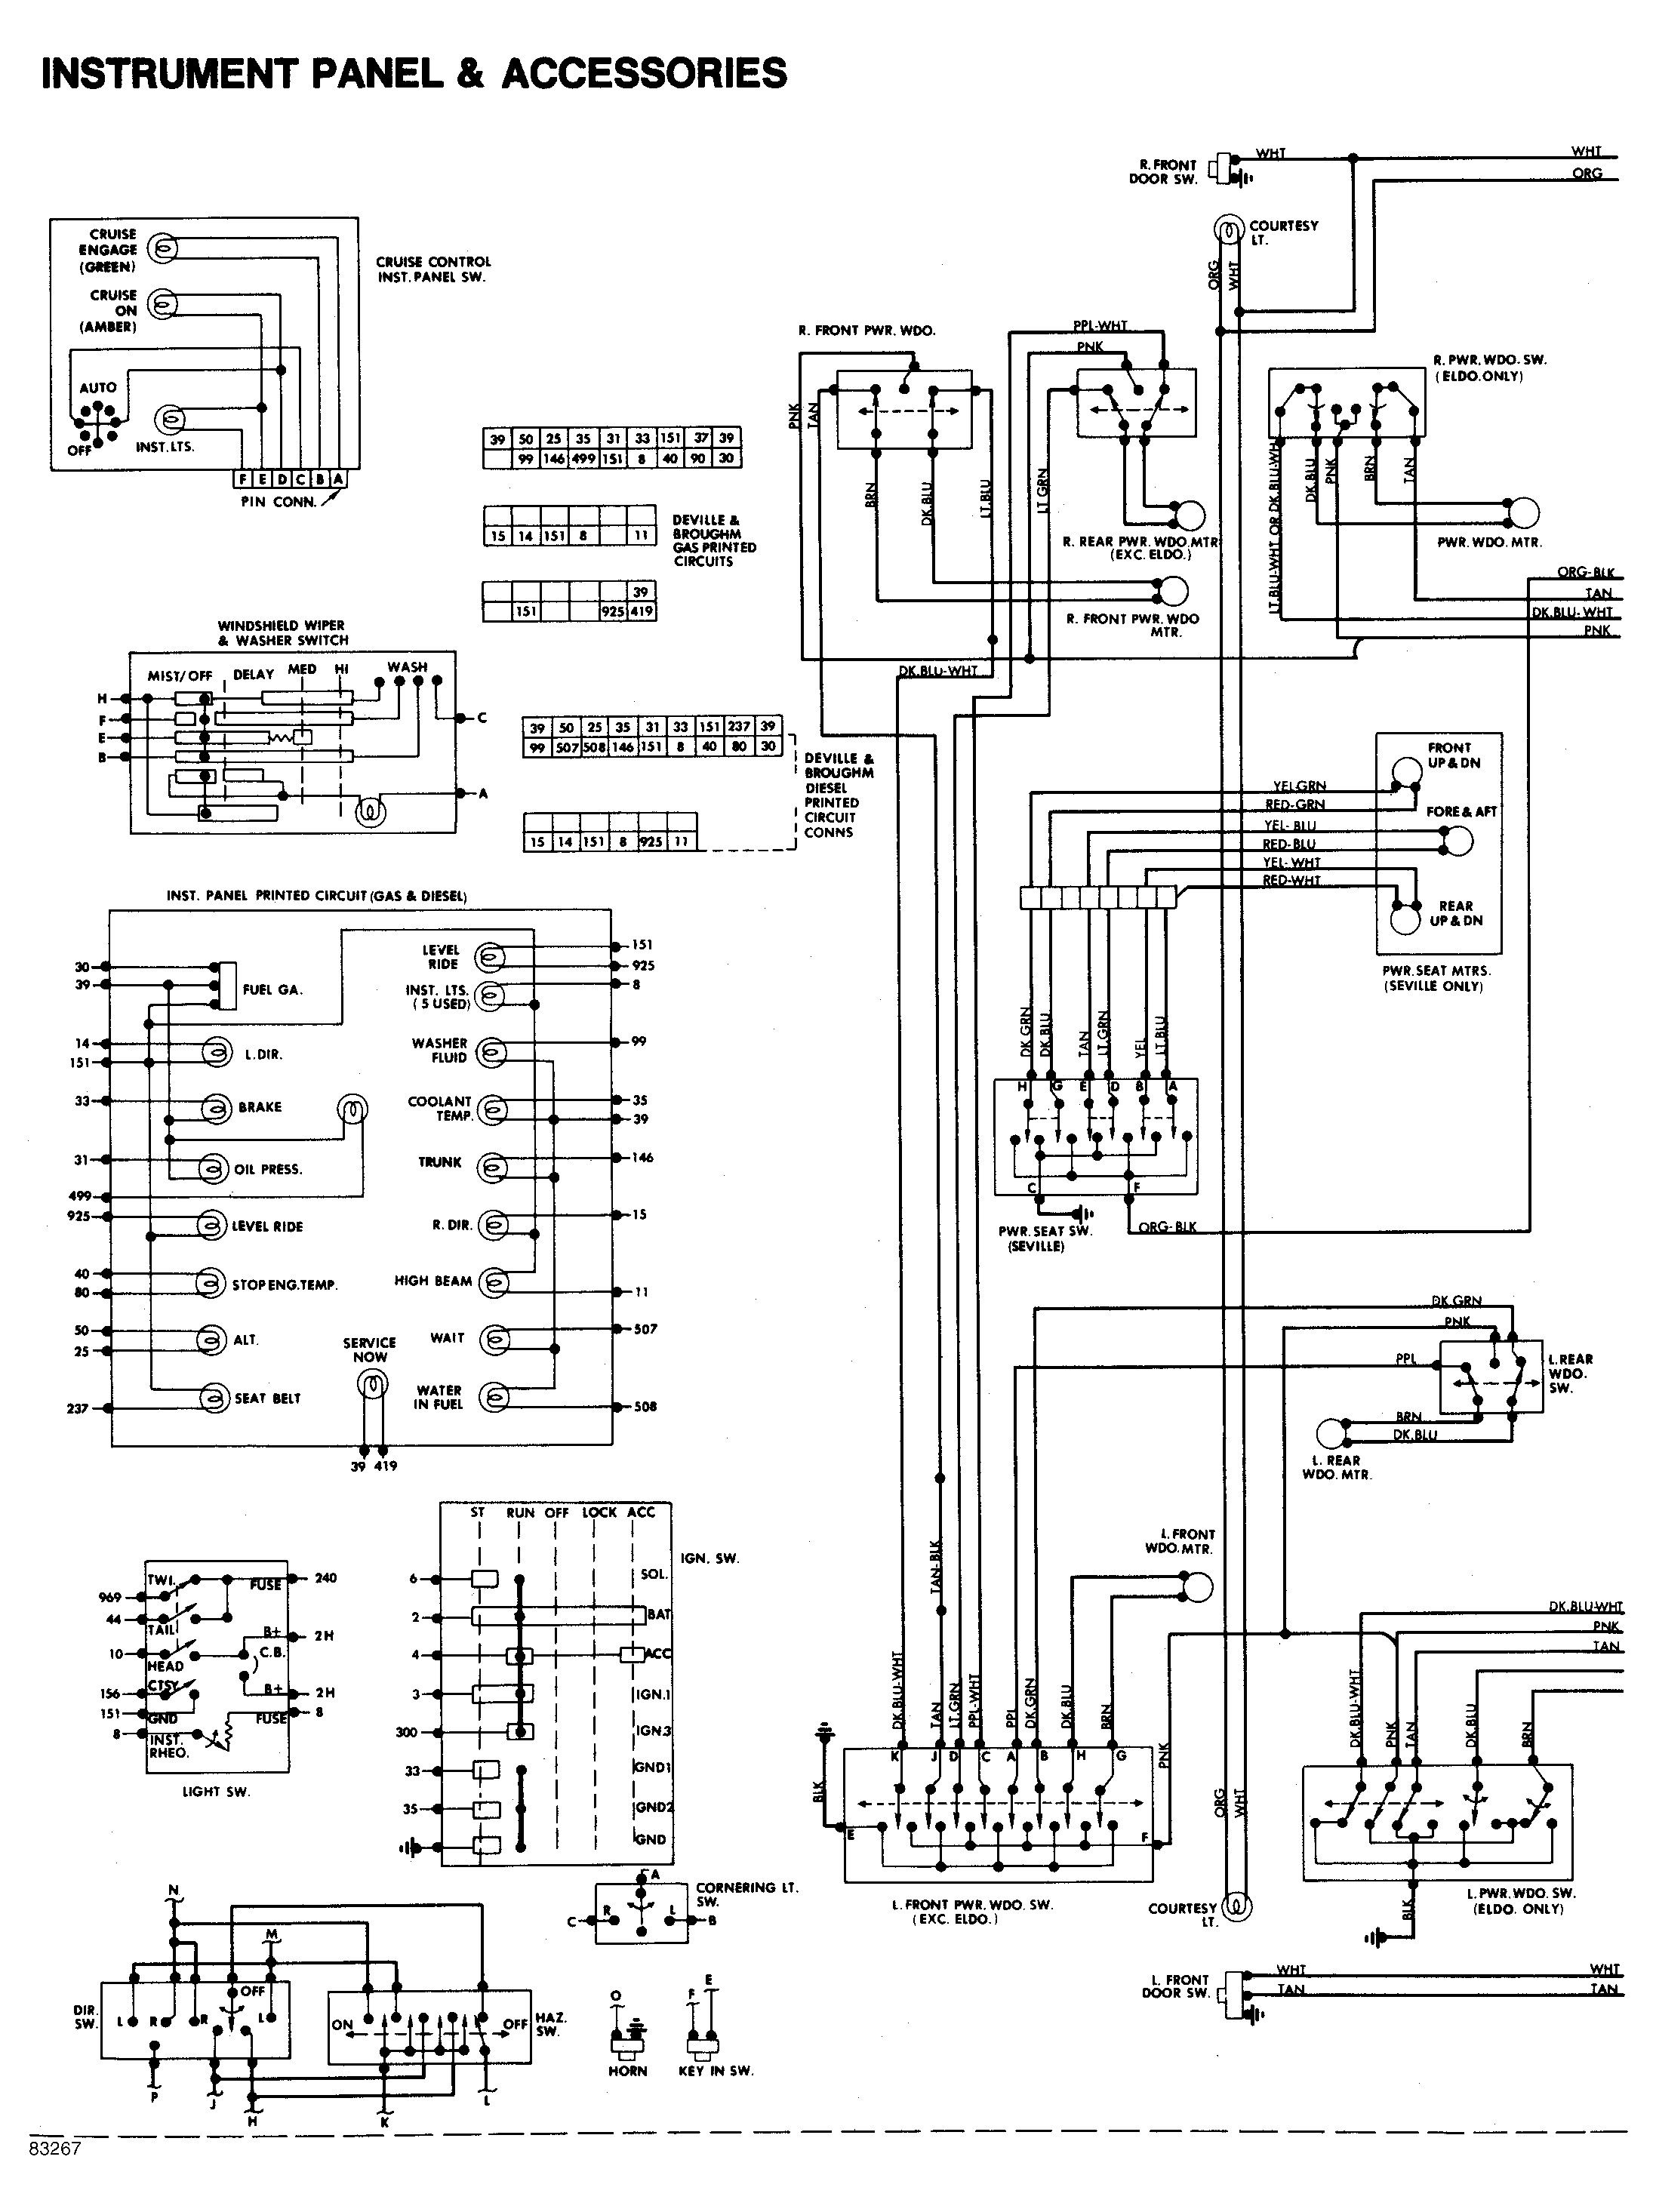 2003 International Truck Radio Wiring Diagram 2013 F 150 Wiring Diagram Camera Bege Wiring Diagram